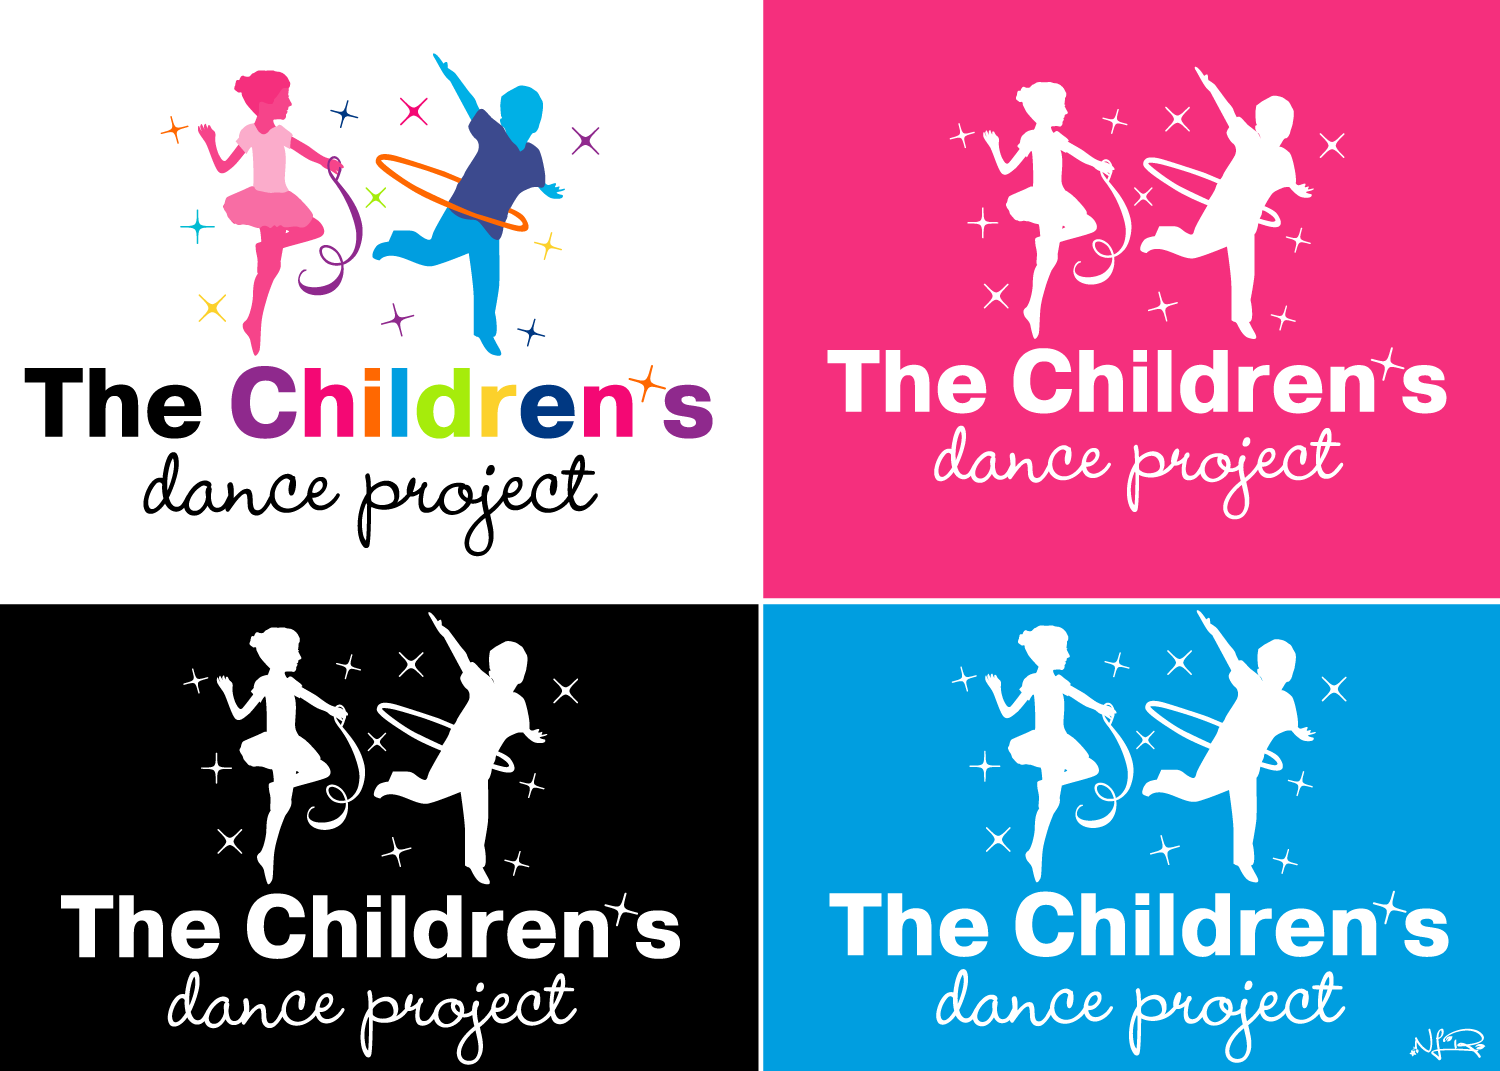 Create the next logo for The Children's Dance Project